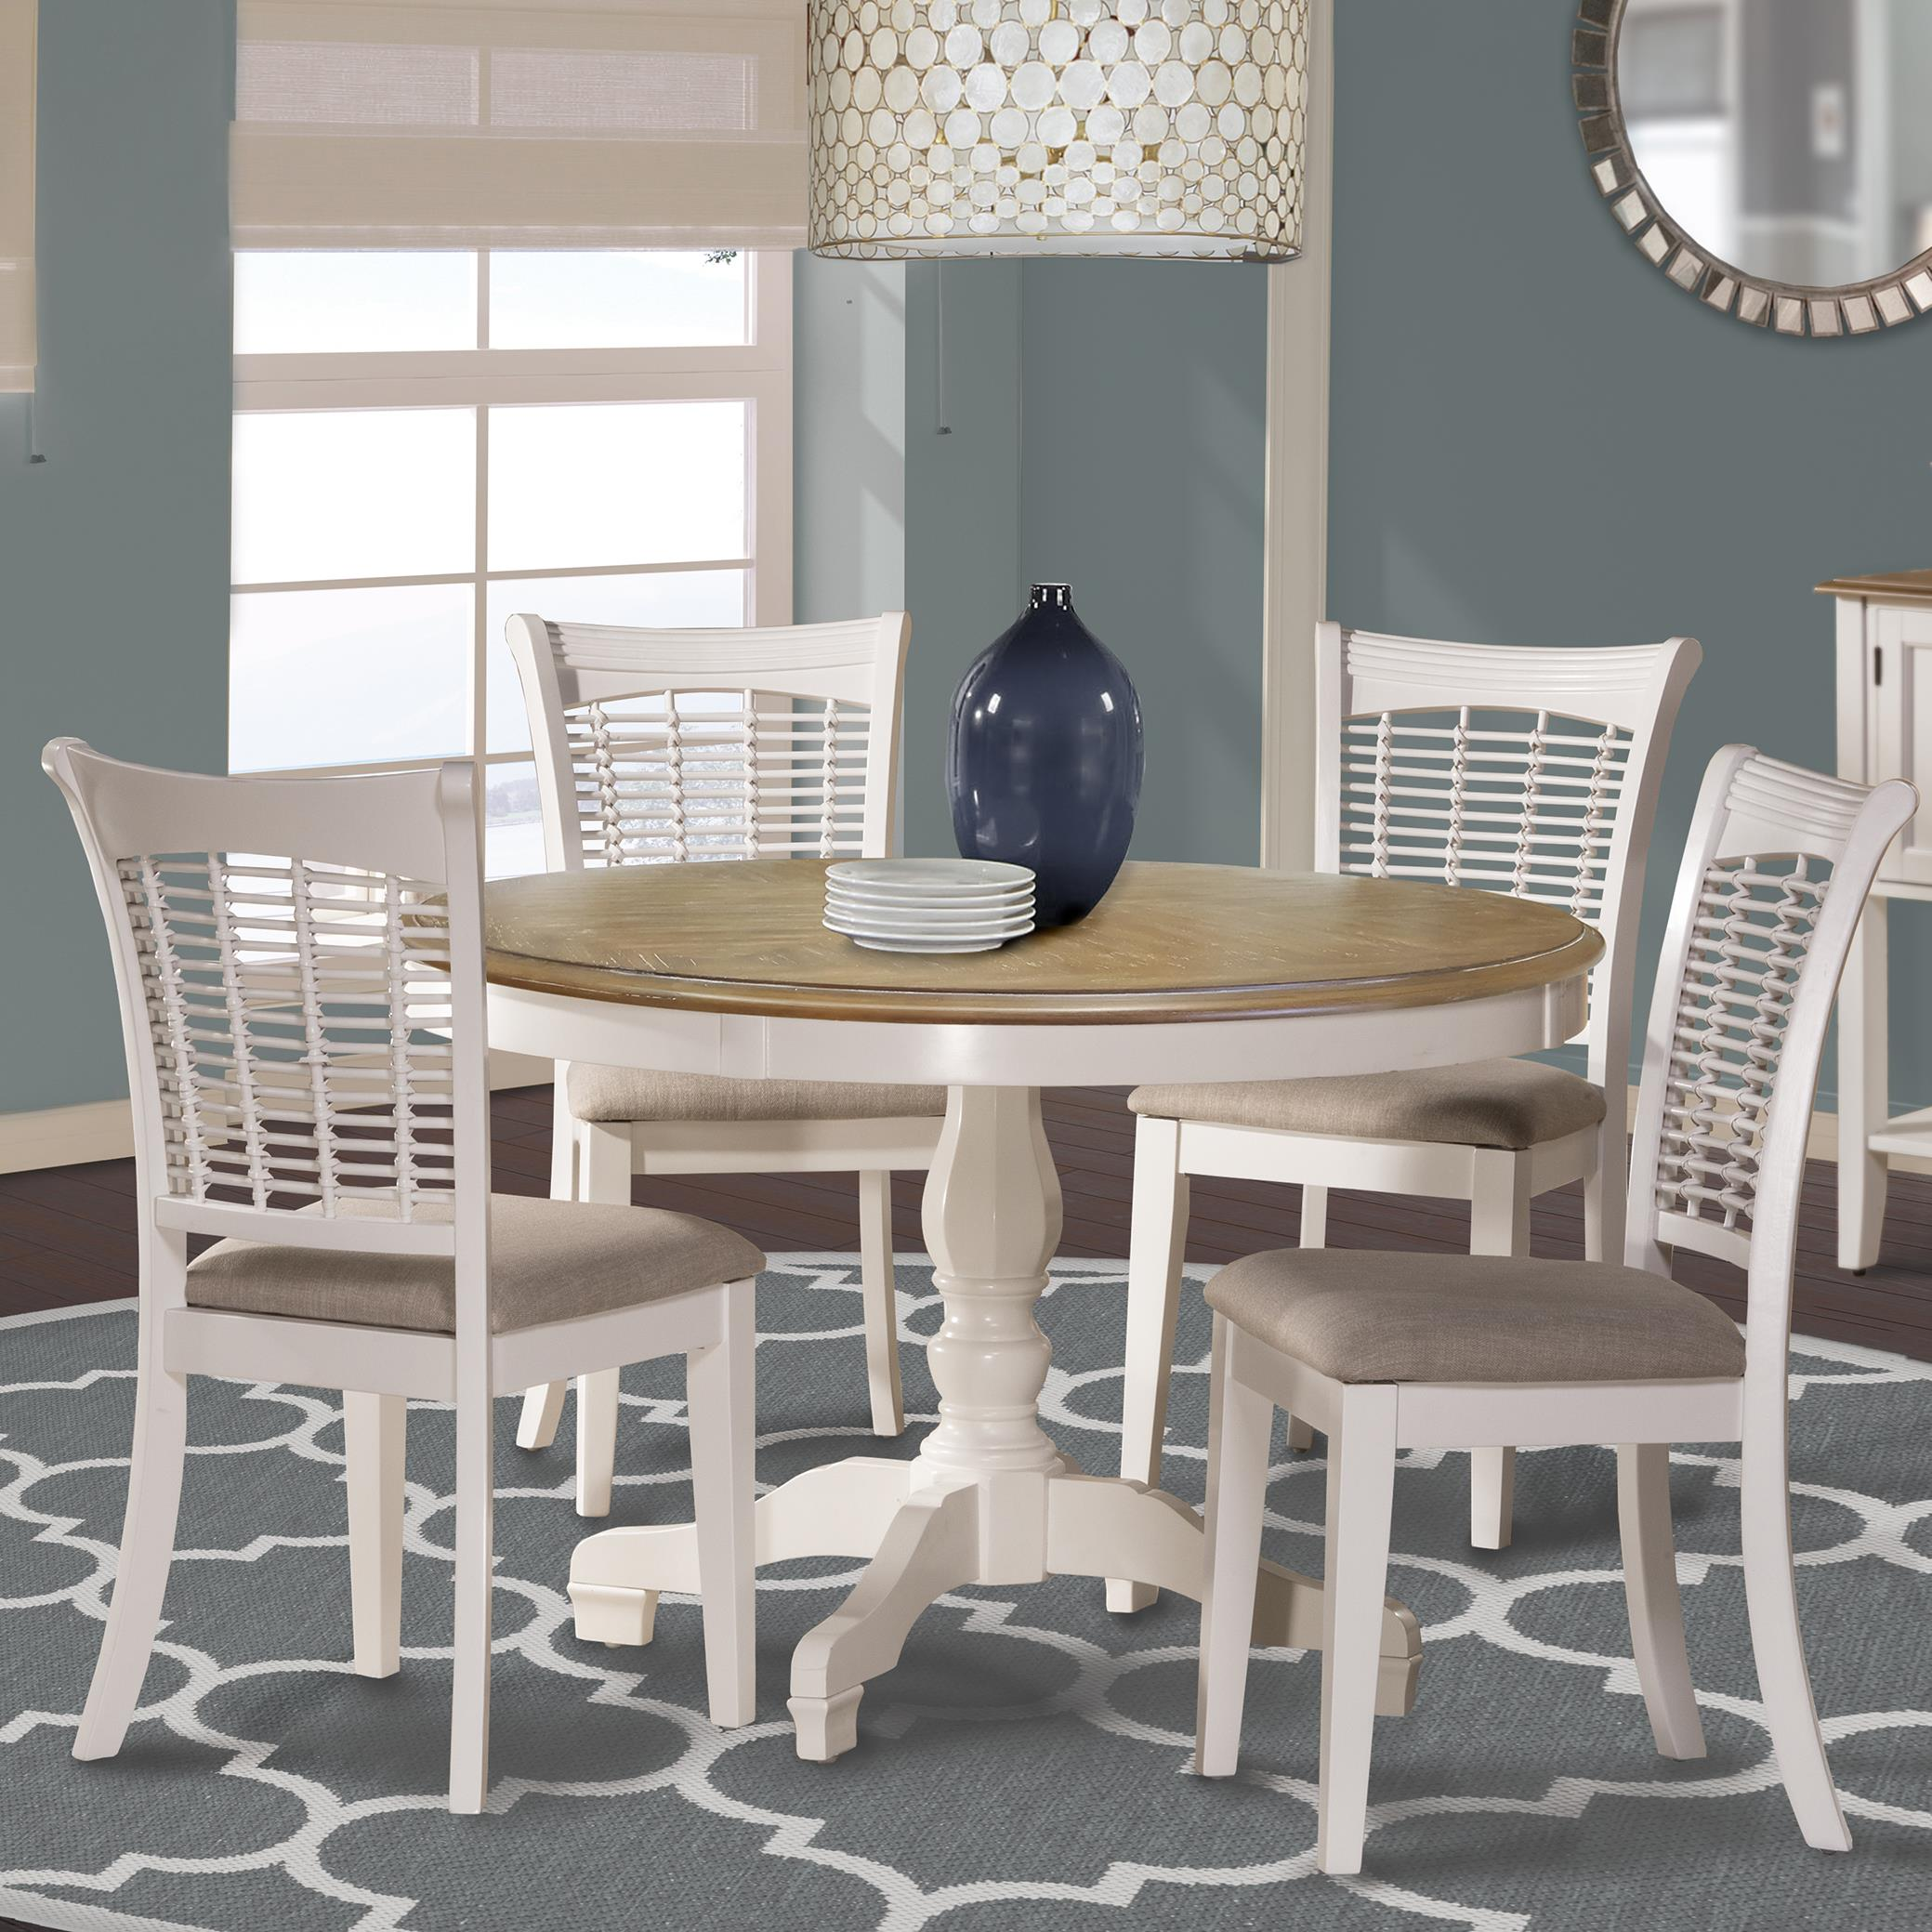 Bayberry White Five Piece Dining Set by Hillsdale at Simply Home by Lindy's